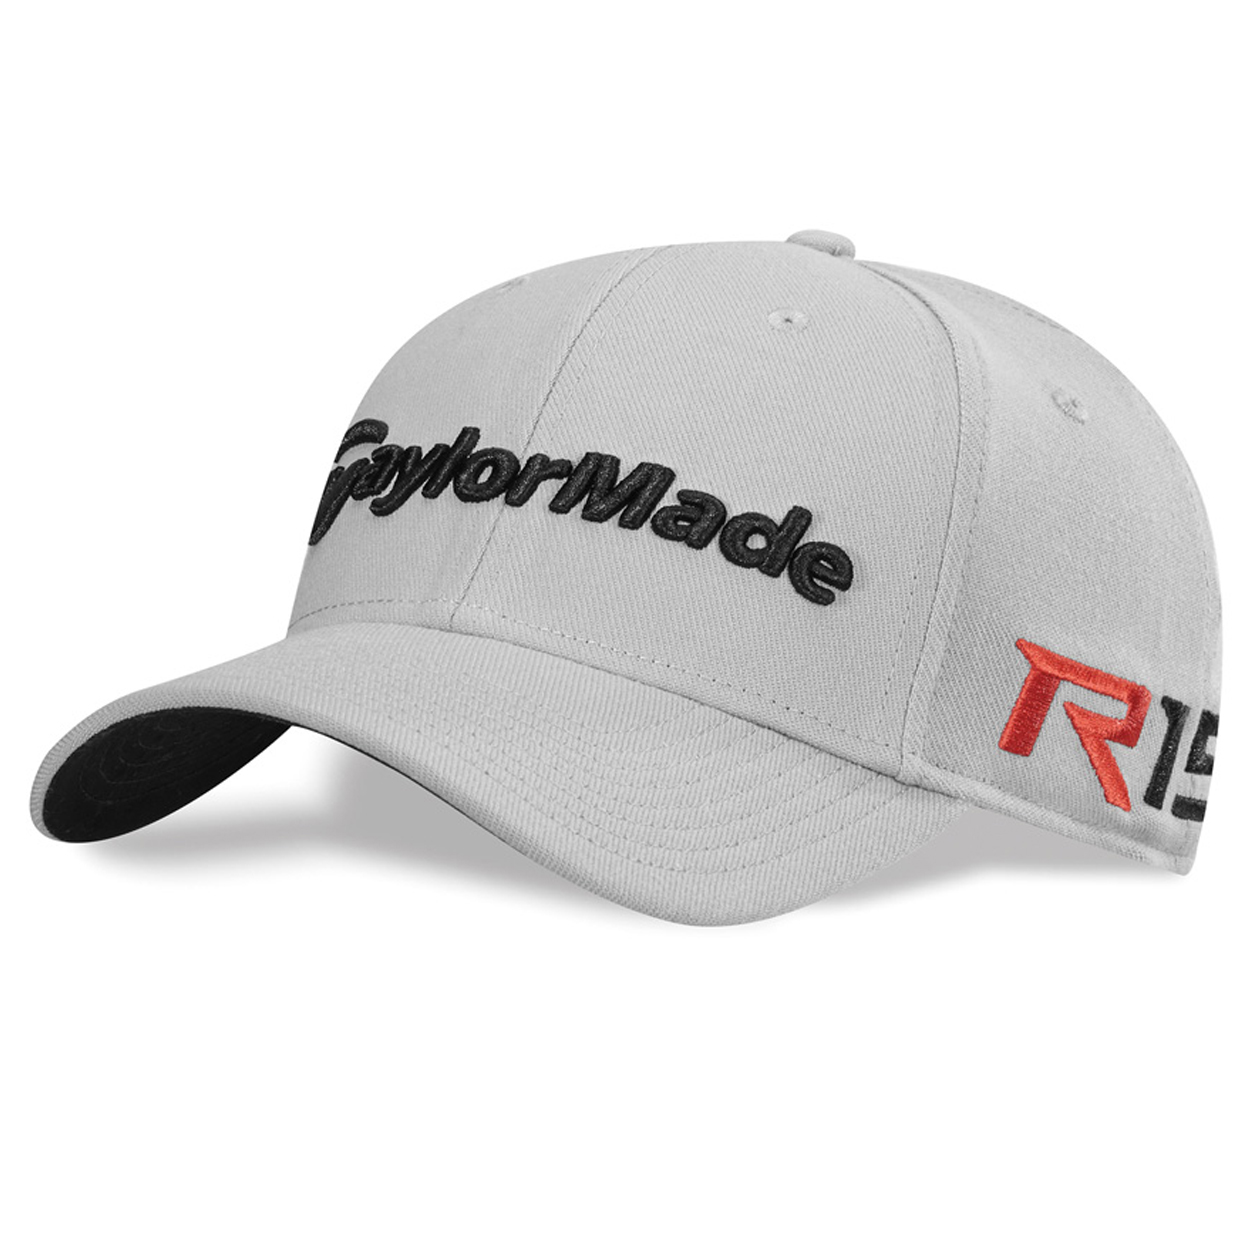 The TaylorMade 39Thirty New Era Fitted Hat is a stylish way to get protection from the sun. Branded with the TaylorMade~ R15~ Aeroburner and New Era logos. There will be no mistake why you are shooting lower scores than your fellow competitors with gear from TaylorMade! Made of 95% polyester 5% span